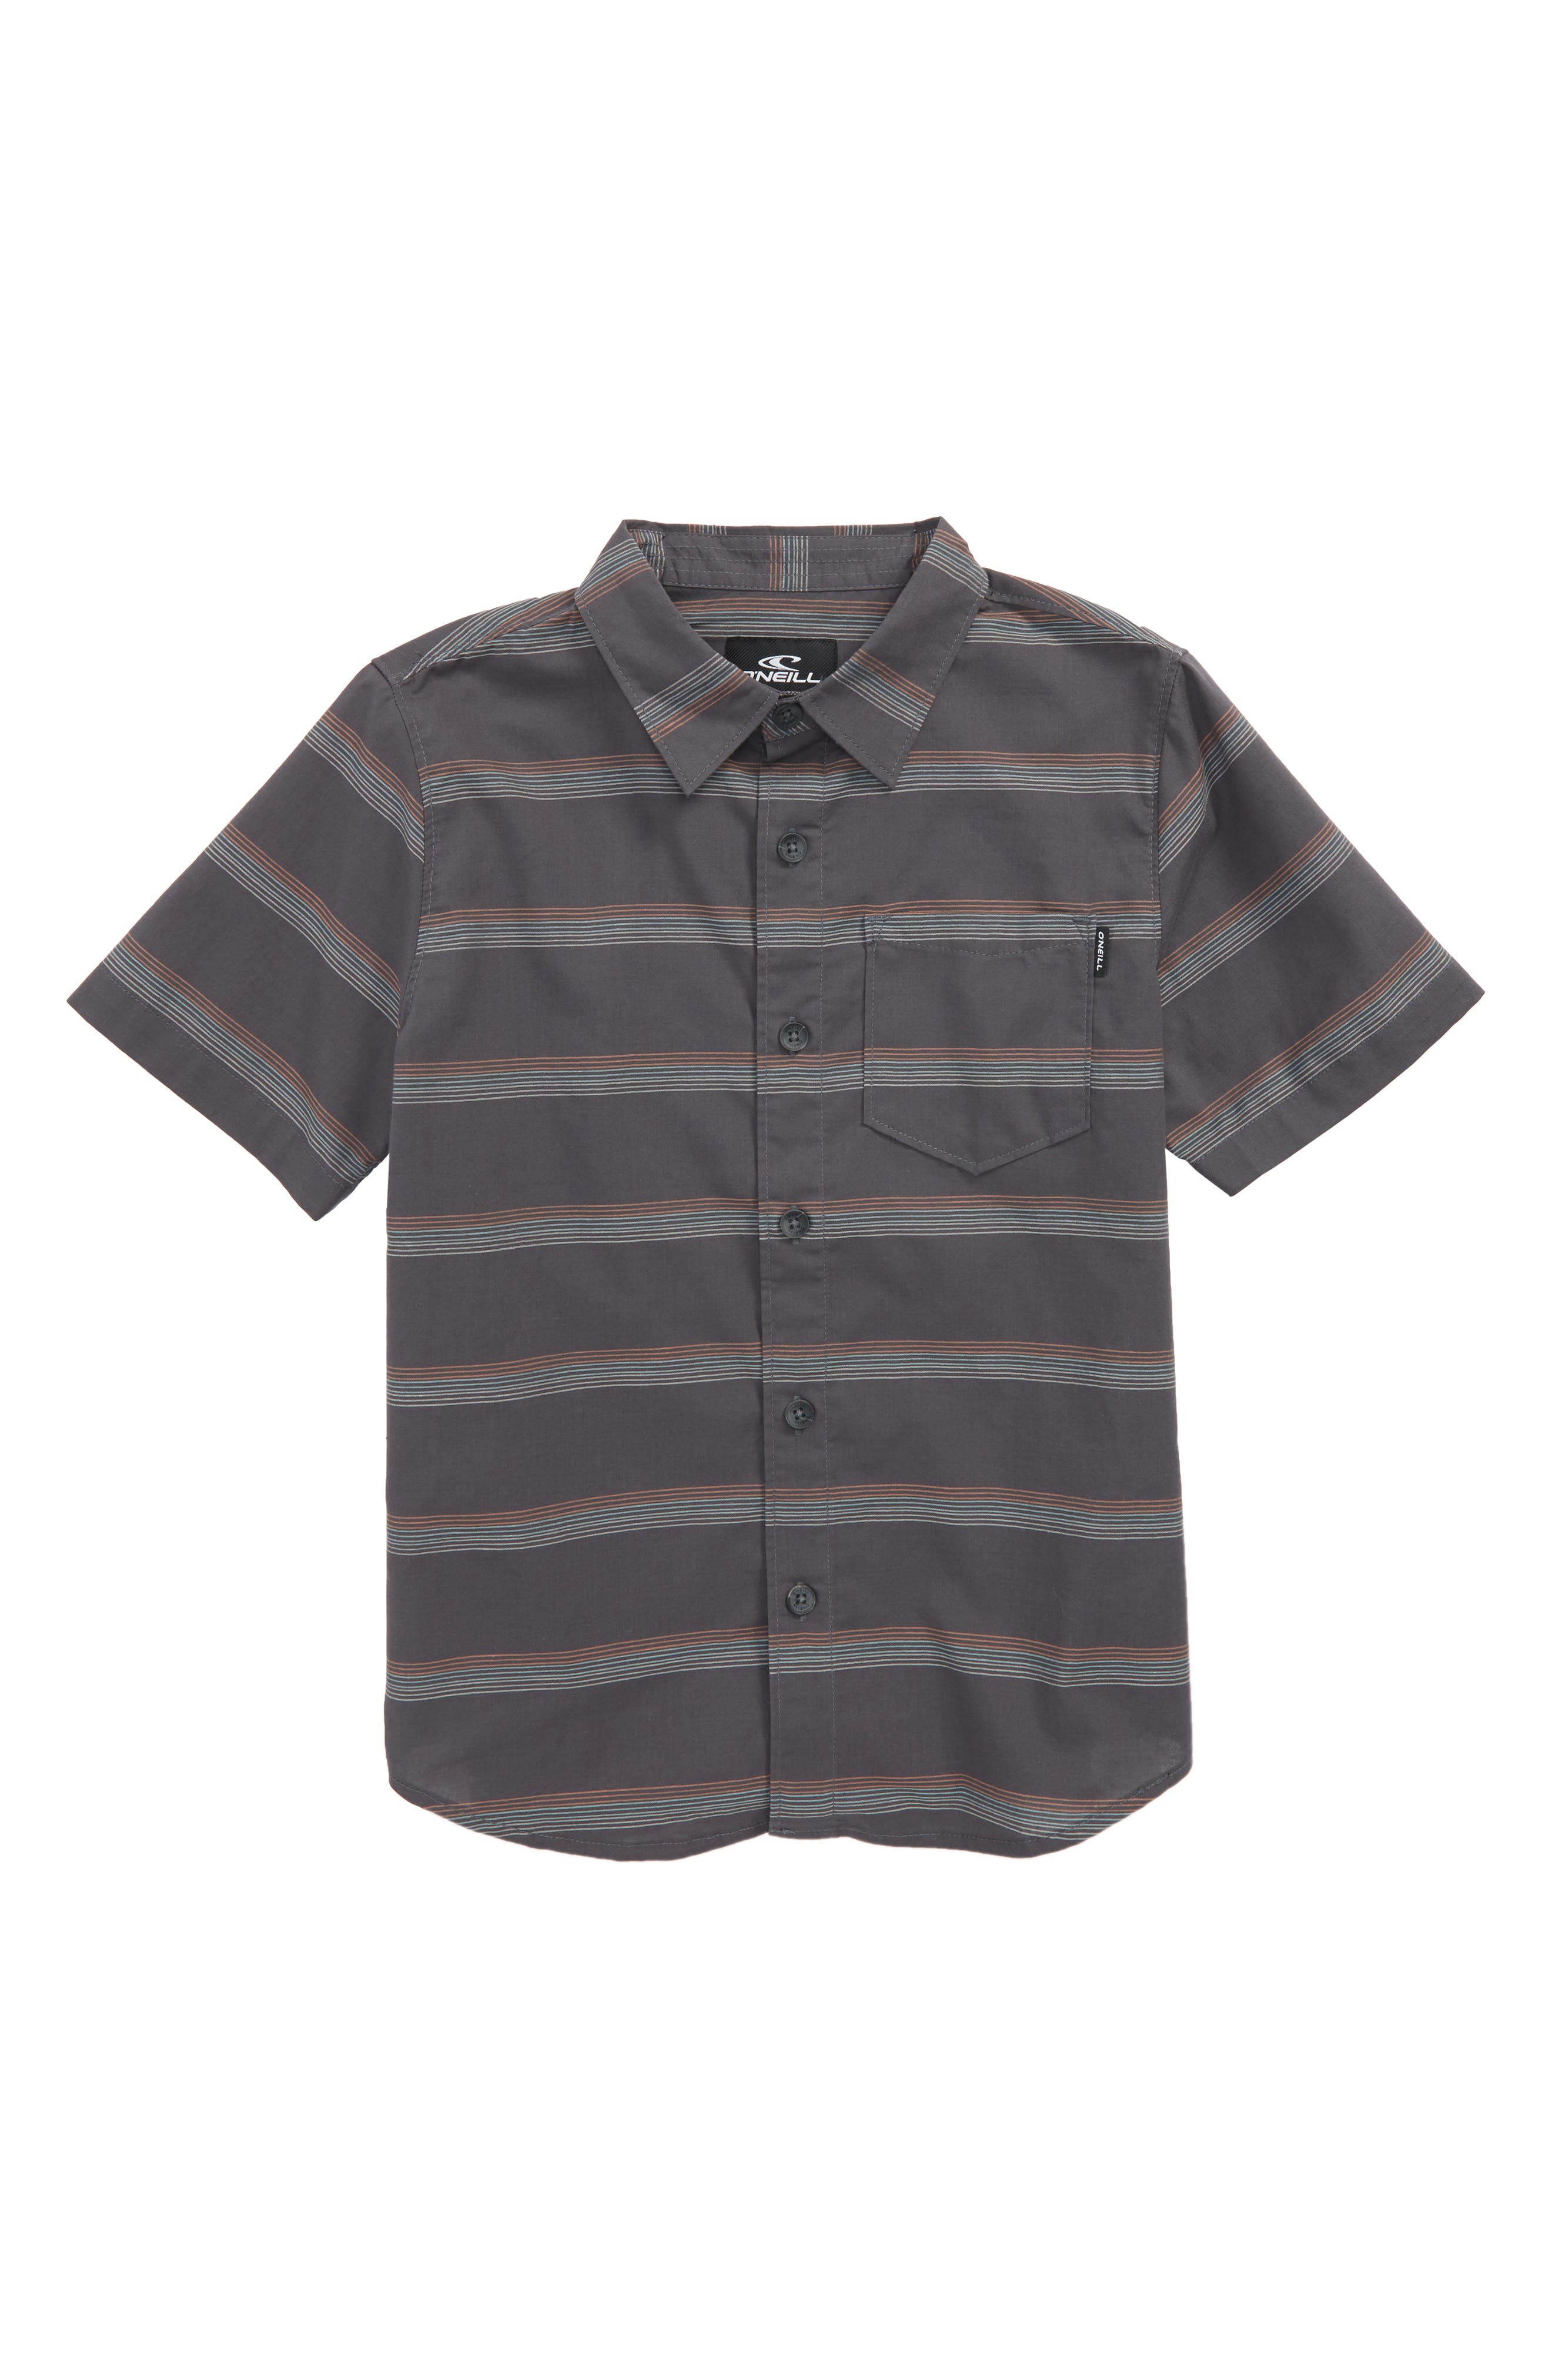 Pickett Woven Shirt,                             Main thumbnail 1, color,                             Asphalt